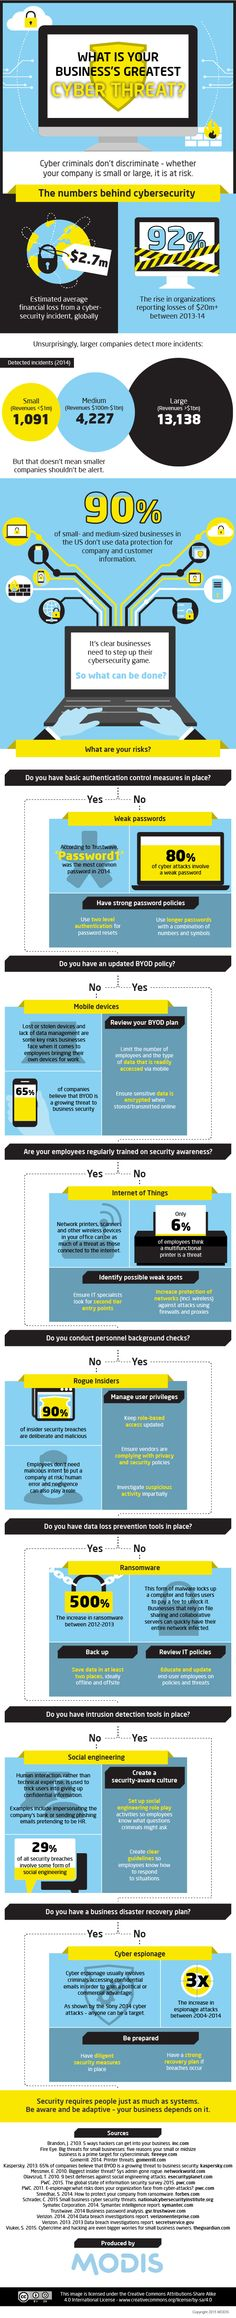 What Is Your Business' Greatest Cyber Threat? - Do you fancy an infographic? There are a lot of them online, but if you want your own please visit http://www.linfografico.com/prezzi/ Online girano molte infografiche, se ne vuoi realizzare una tutta tua visita http://www.linfografico.com/prezzi/